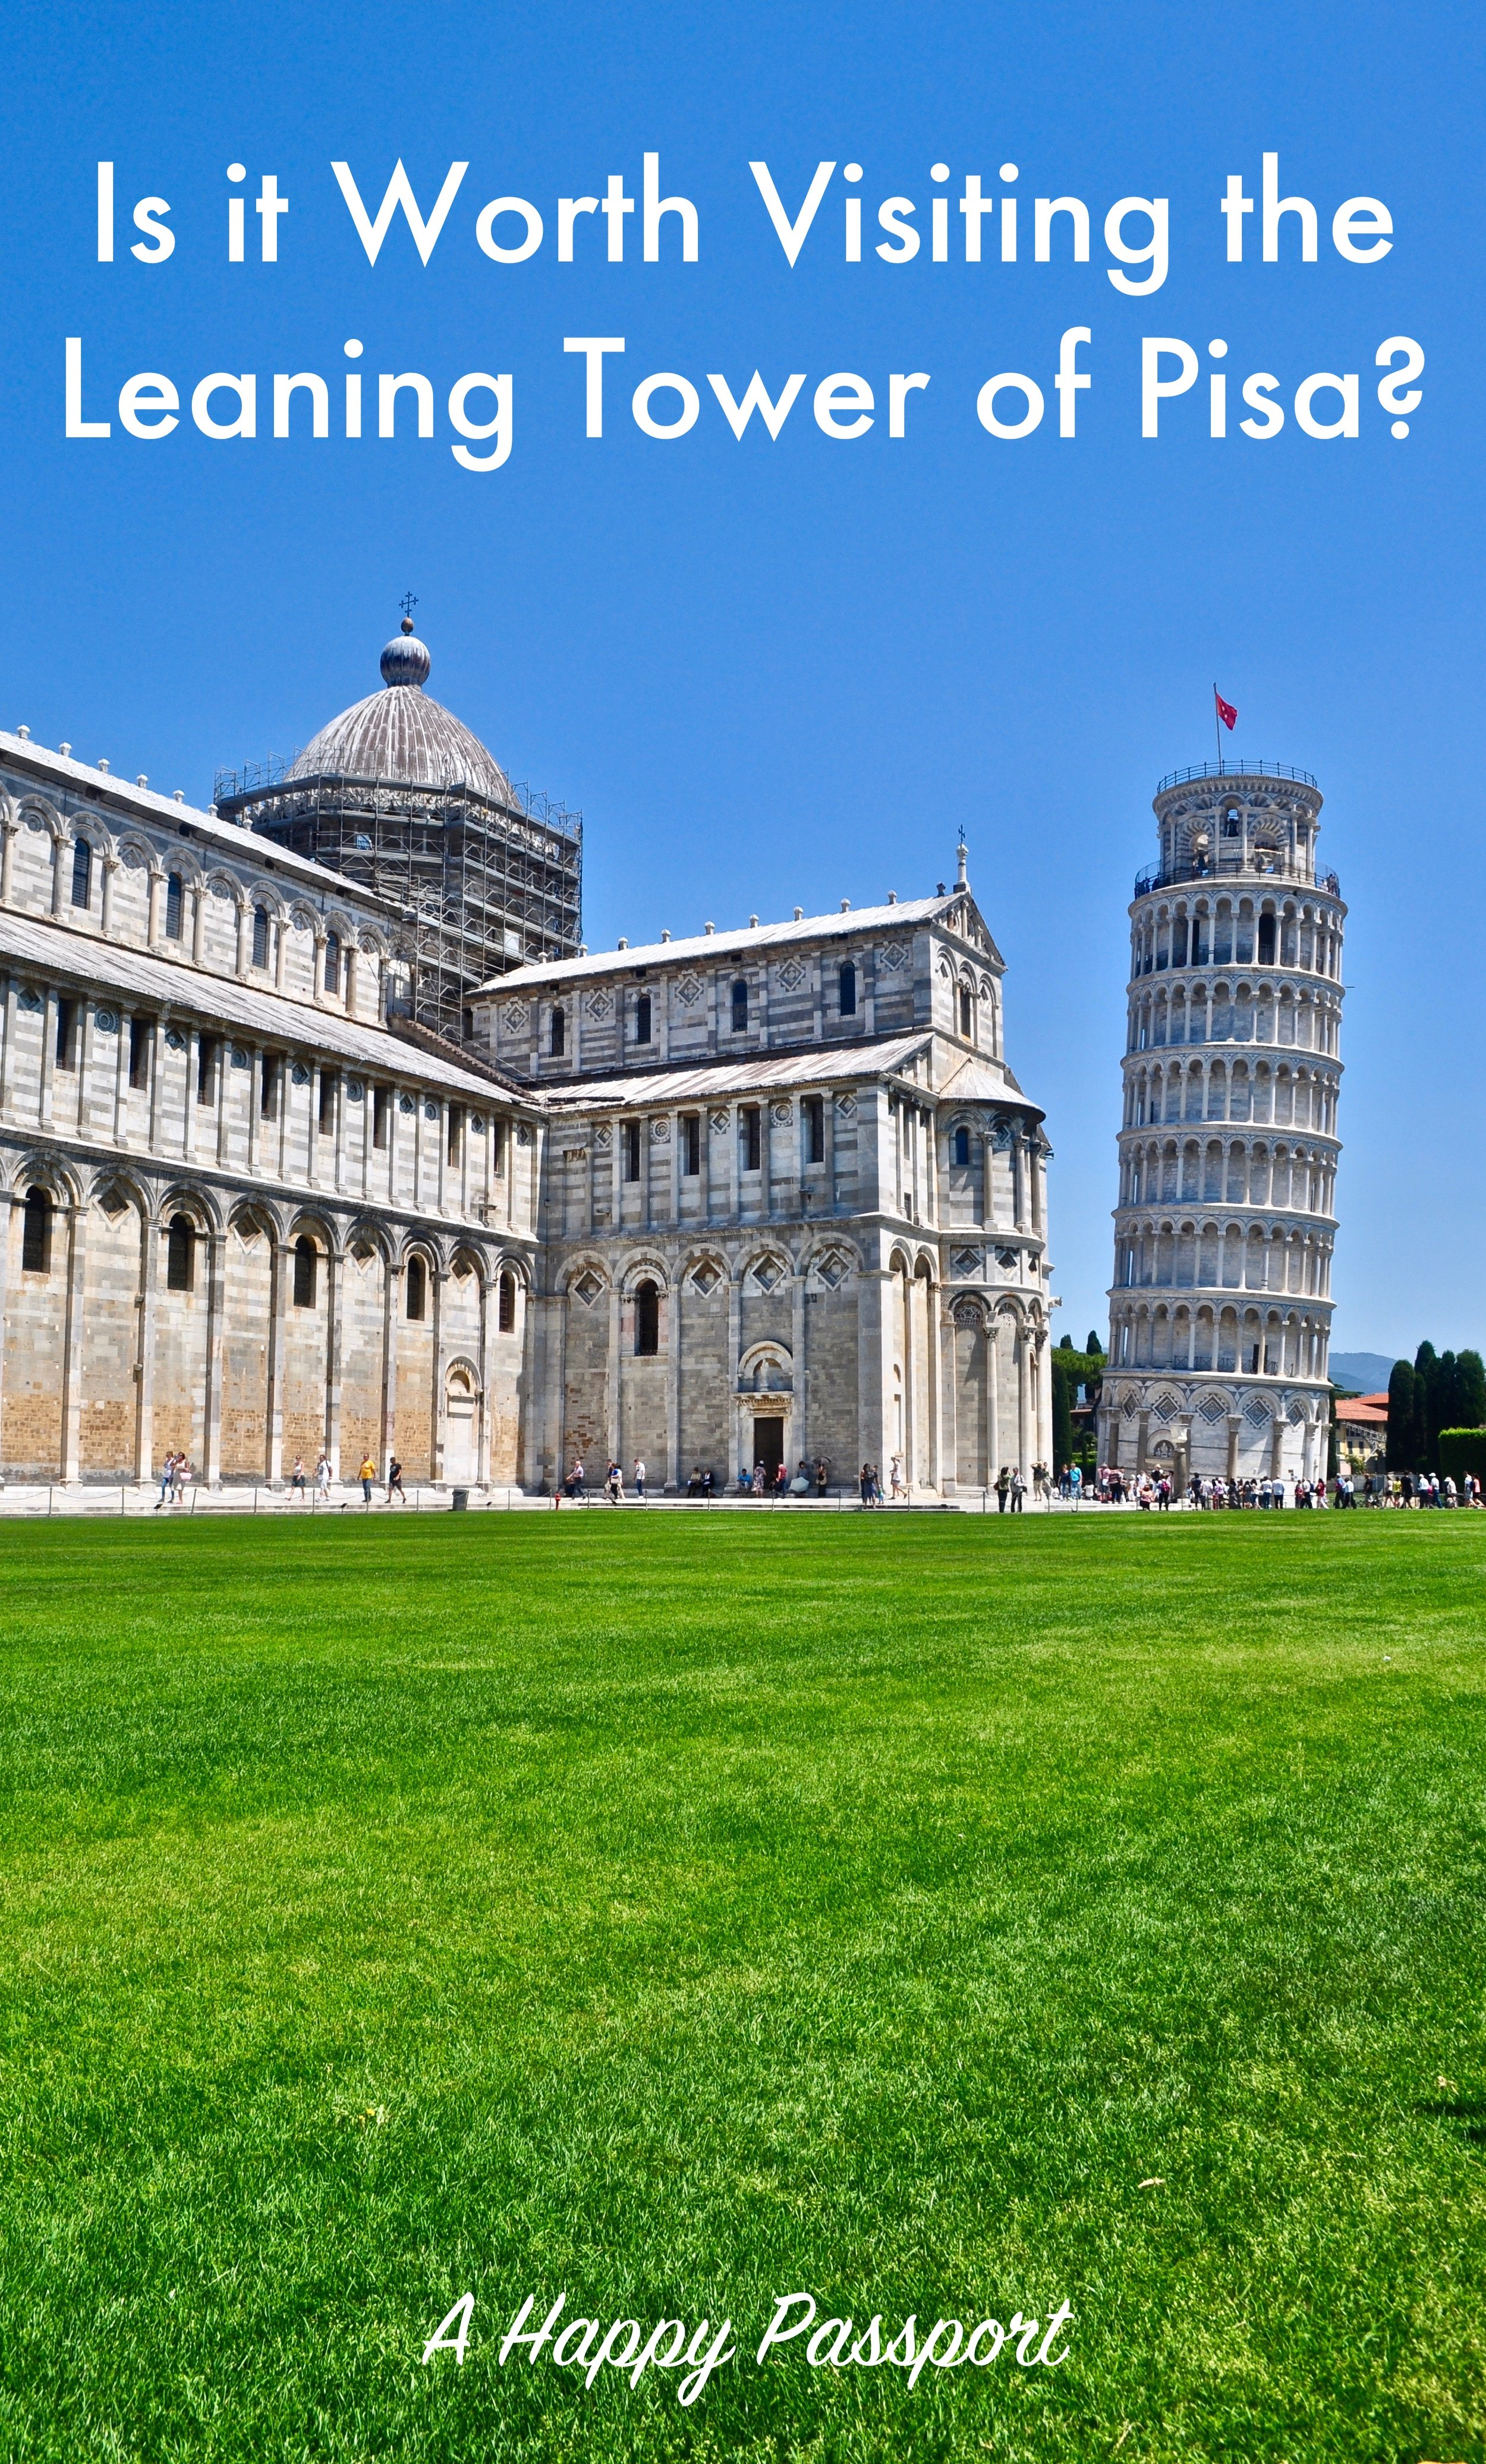 Is It Worth Visiting the Leaning Tower of Pisa? - A Happy Passport.  Is it worth going to Pisa, Italy to see the famous tower?  Here are 3 reason why it is a good idea to go and 5 reasons not to go.  #pisa #italy #leaningtower #europe